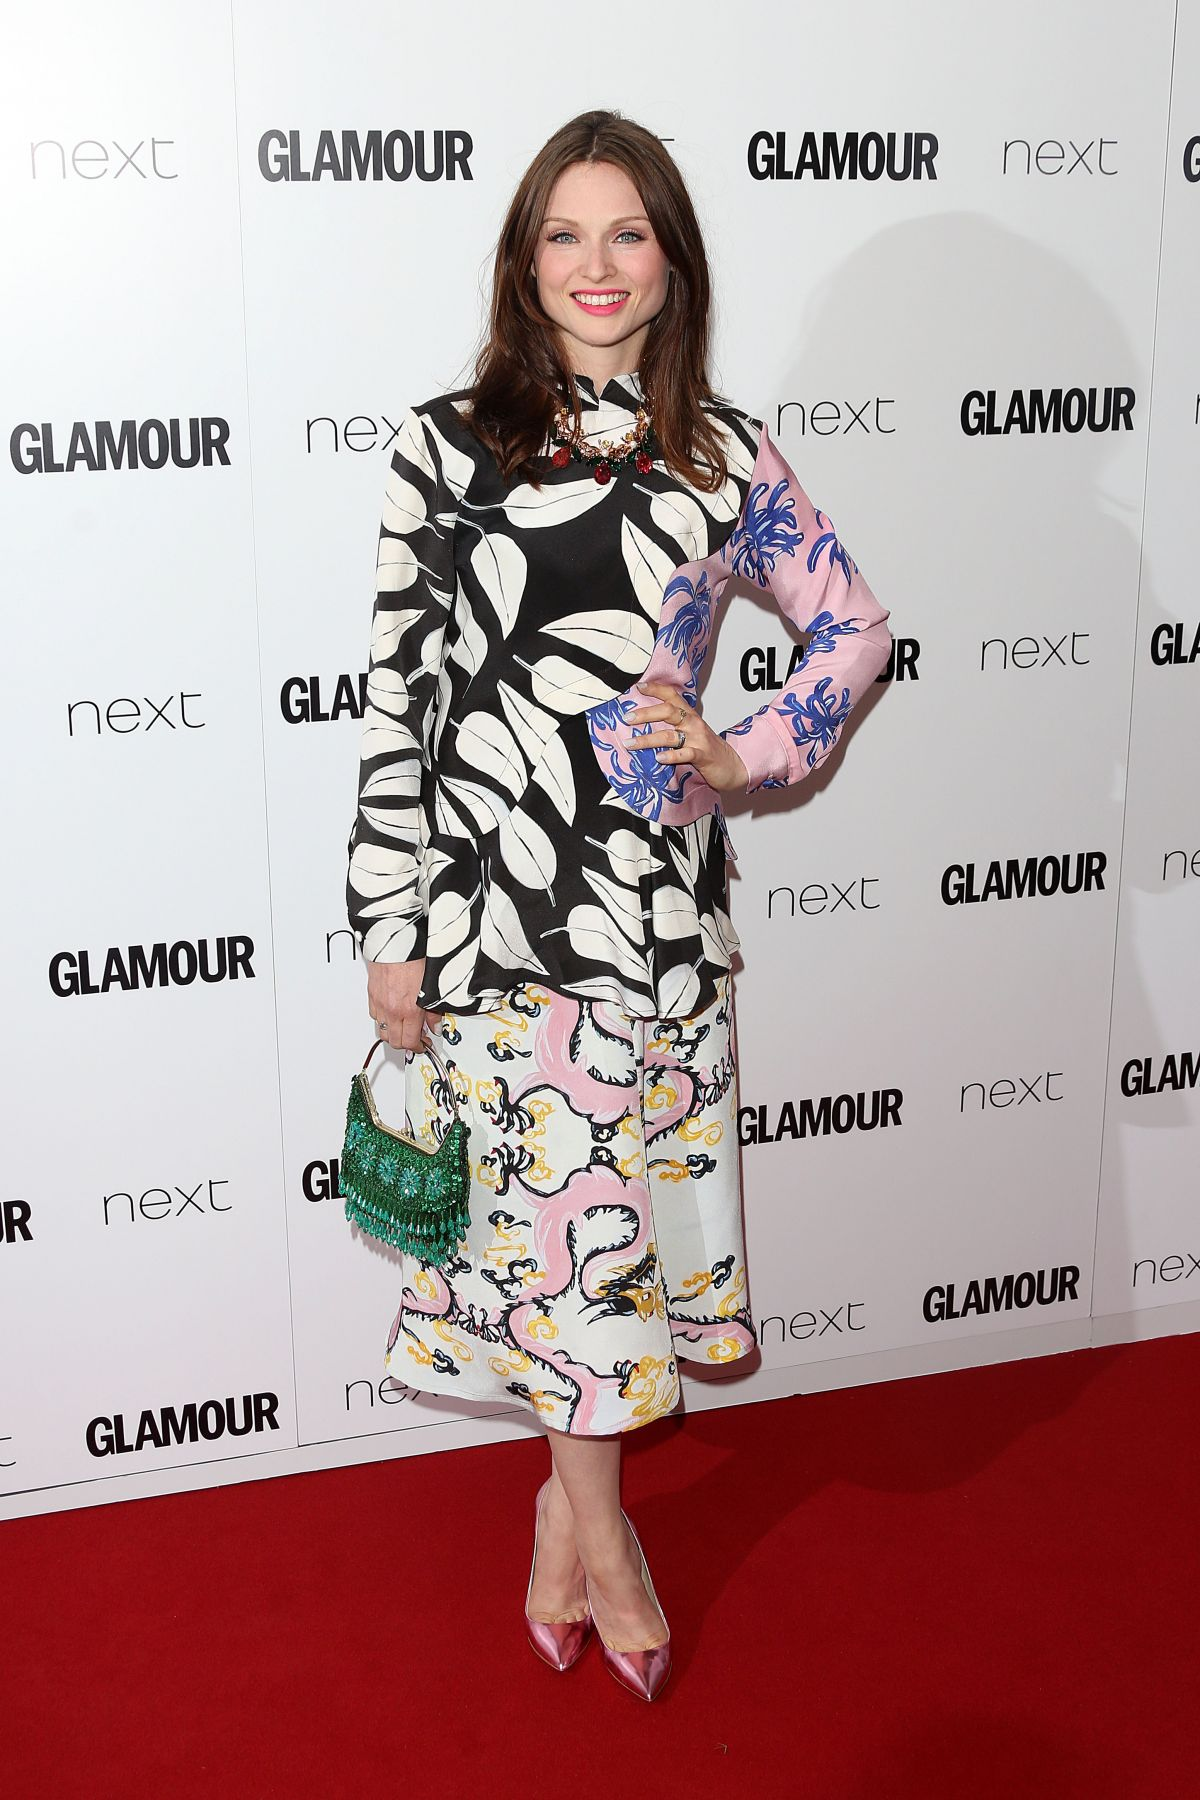 sophie-ellis-bextor-at-glamour-women-of-the-year-awards-in-london_1